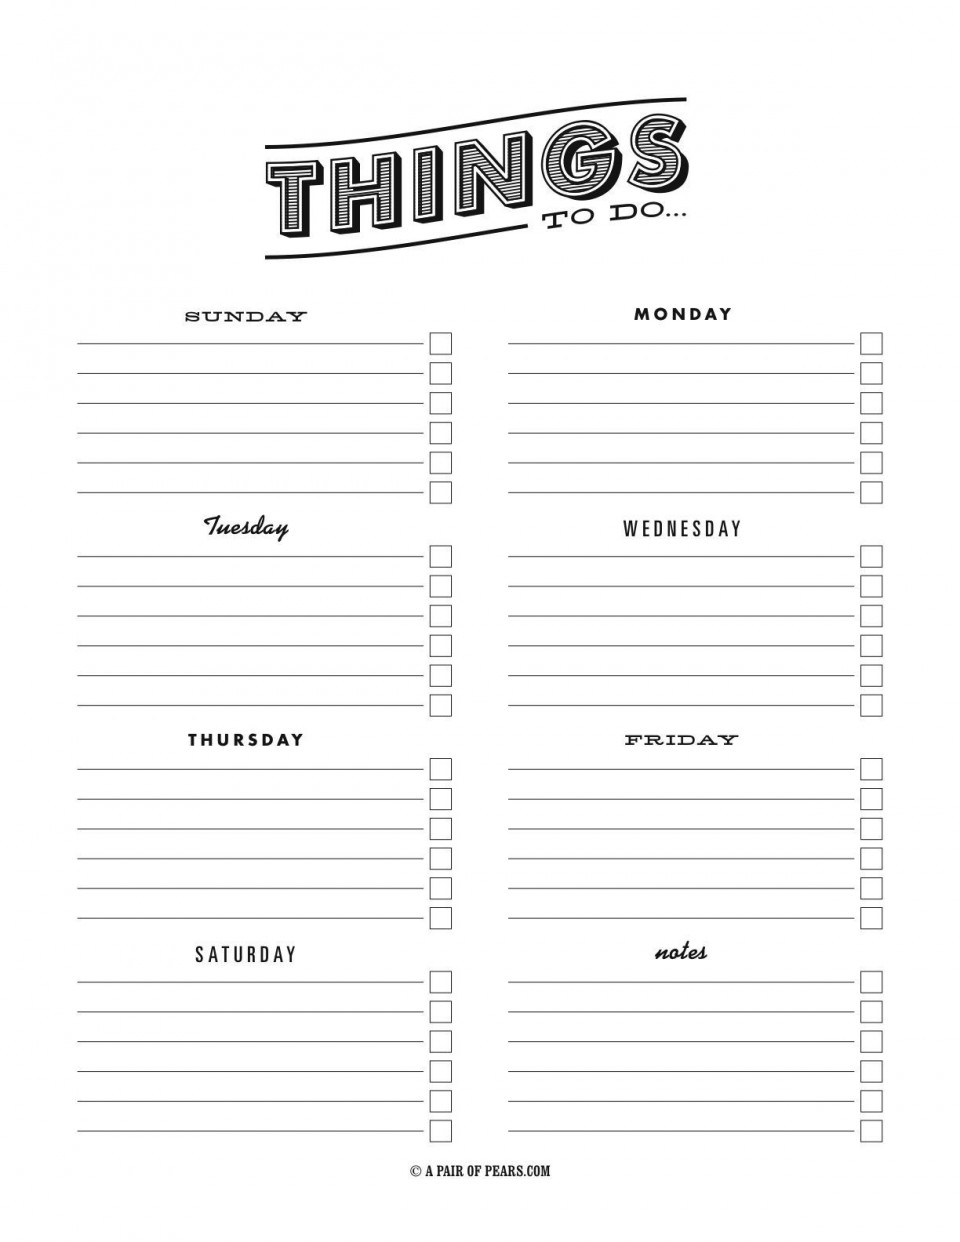 003 Fascinating To Do Checklist Template Image 960